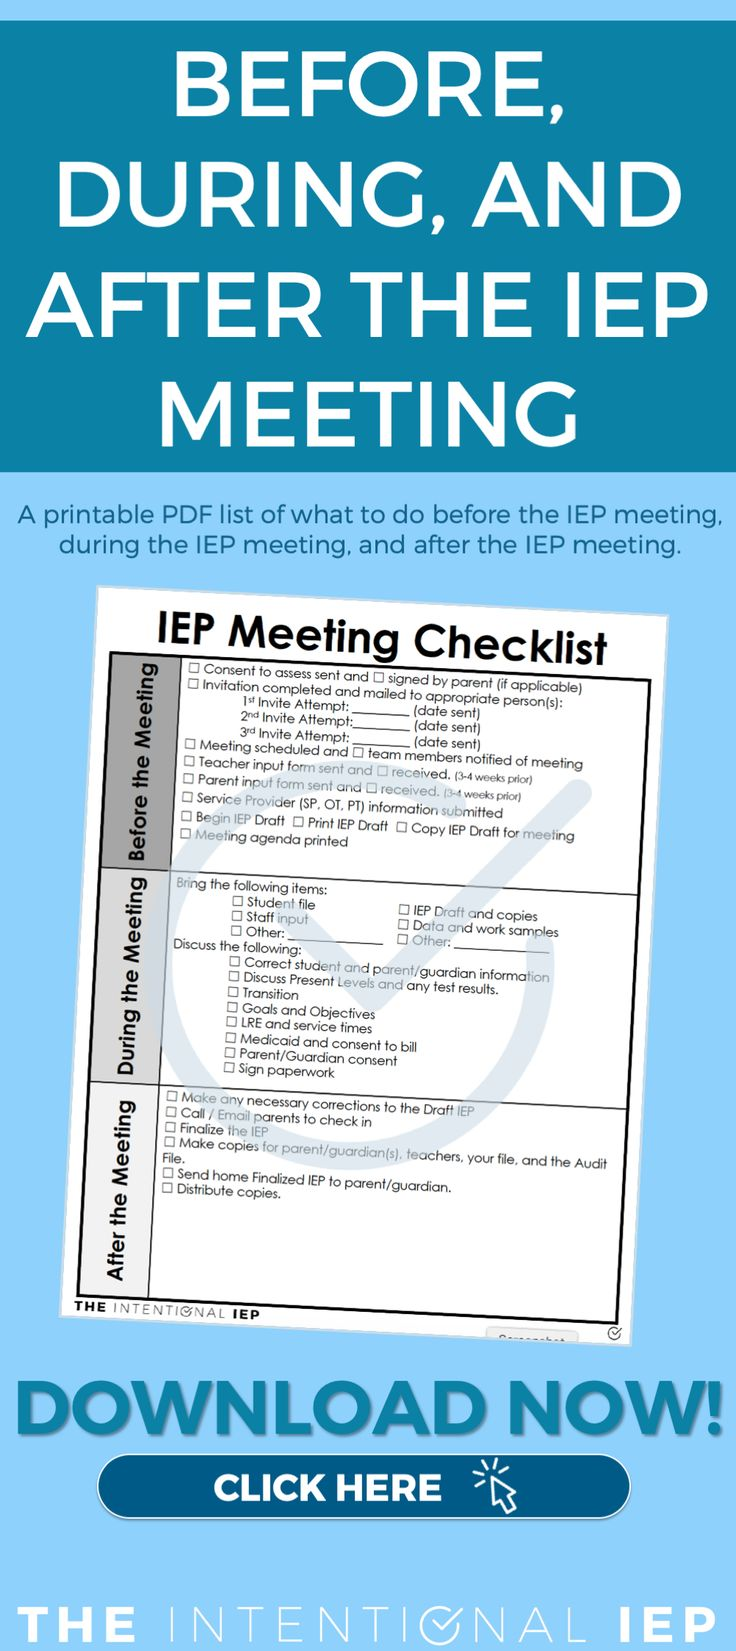 Free printable iep meeting checklist for teachers in 2020